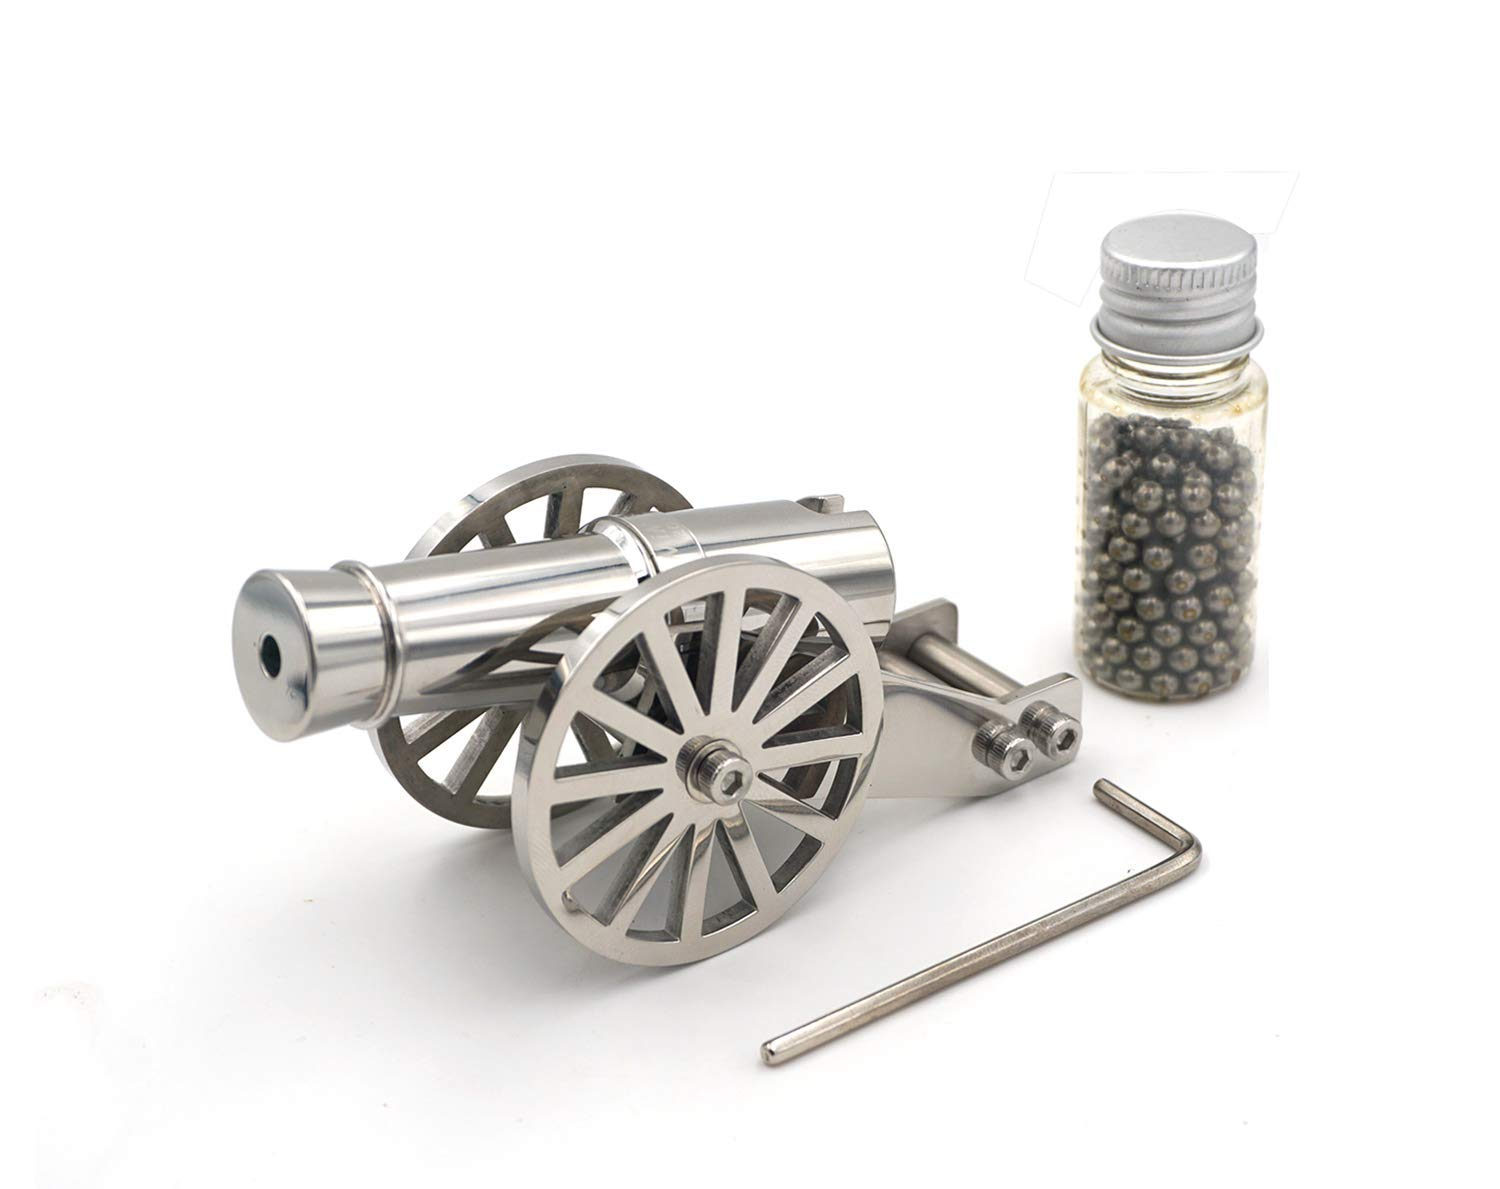 weccesory Miniature Napoleon Cannon Metal Naval Desktop Model Artillery Kit for Collection by weccesory